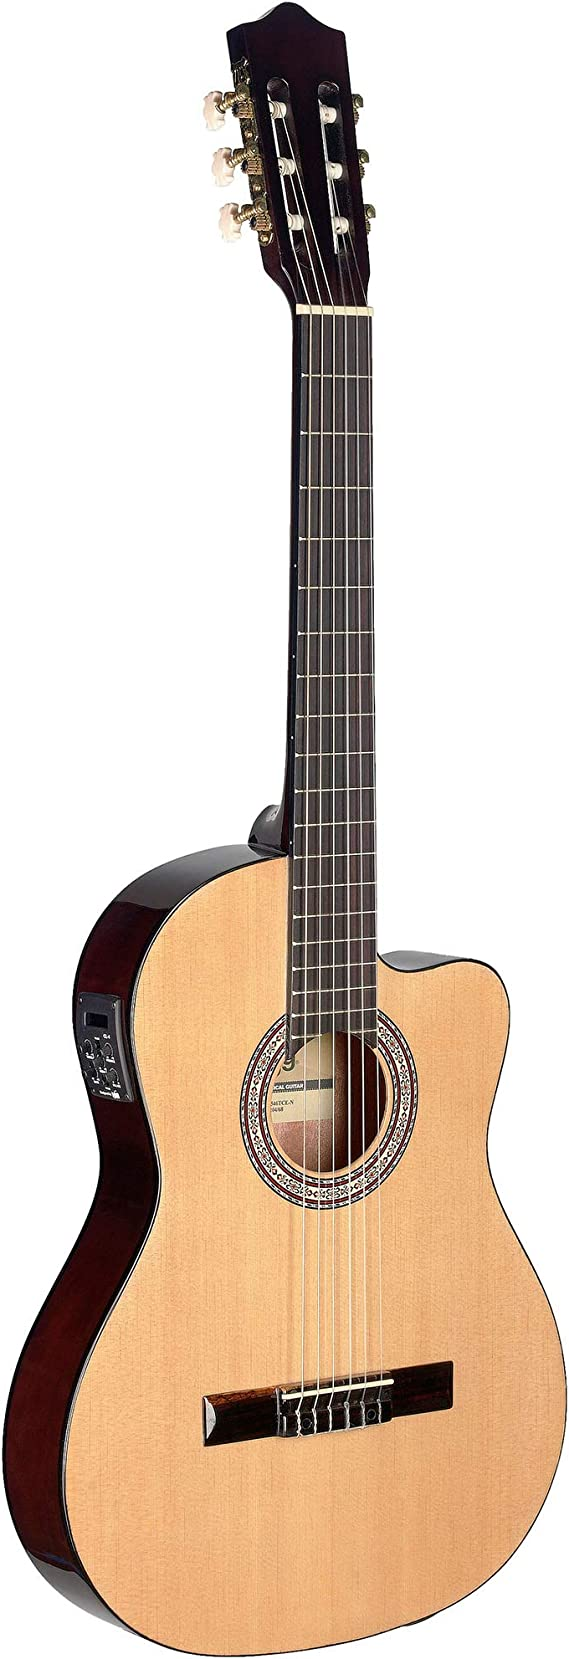 Stagg c546tce - n Electroacústica Natural guitarra clásica: Amazon ...